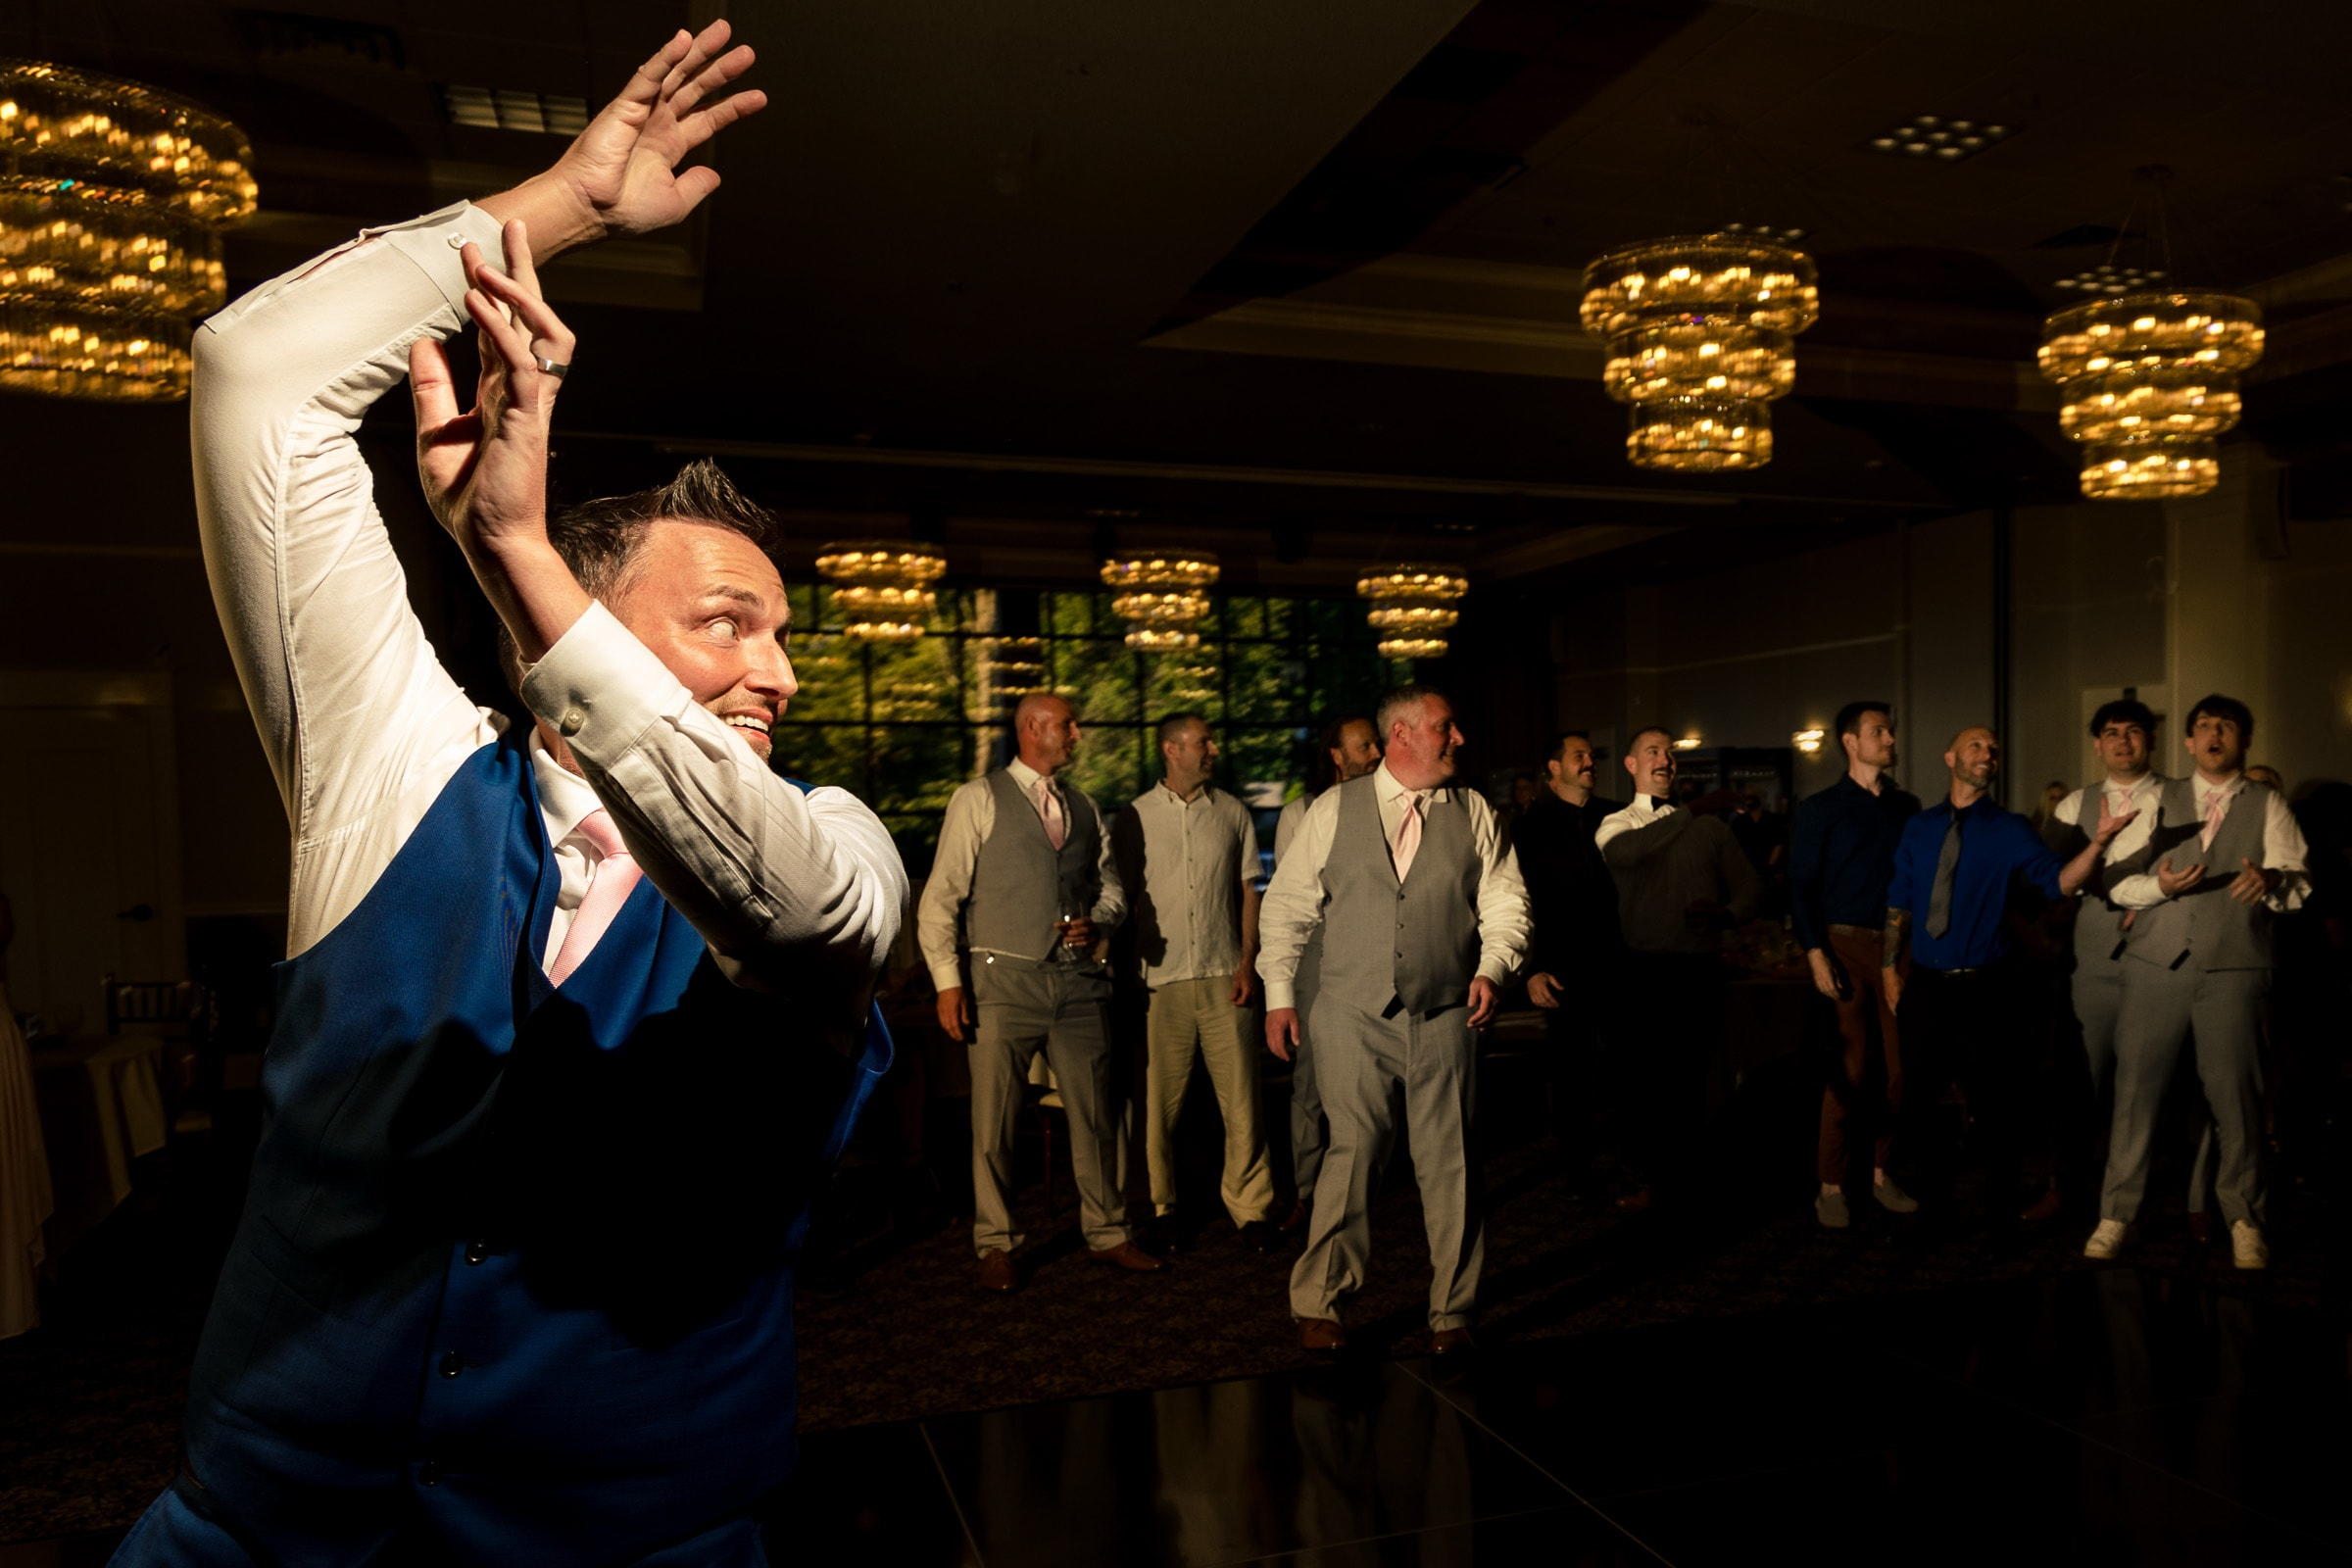 Groom tossing to the groomsmen during an Abernethy Center Portland Wedding reception in Oregon City